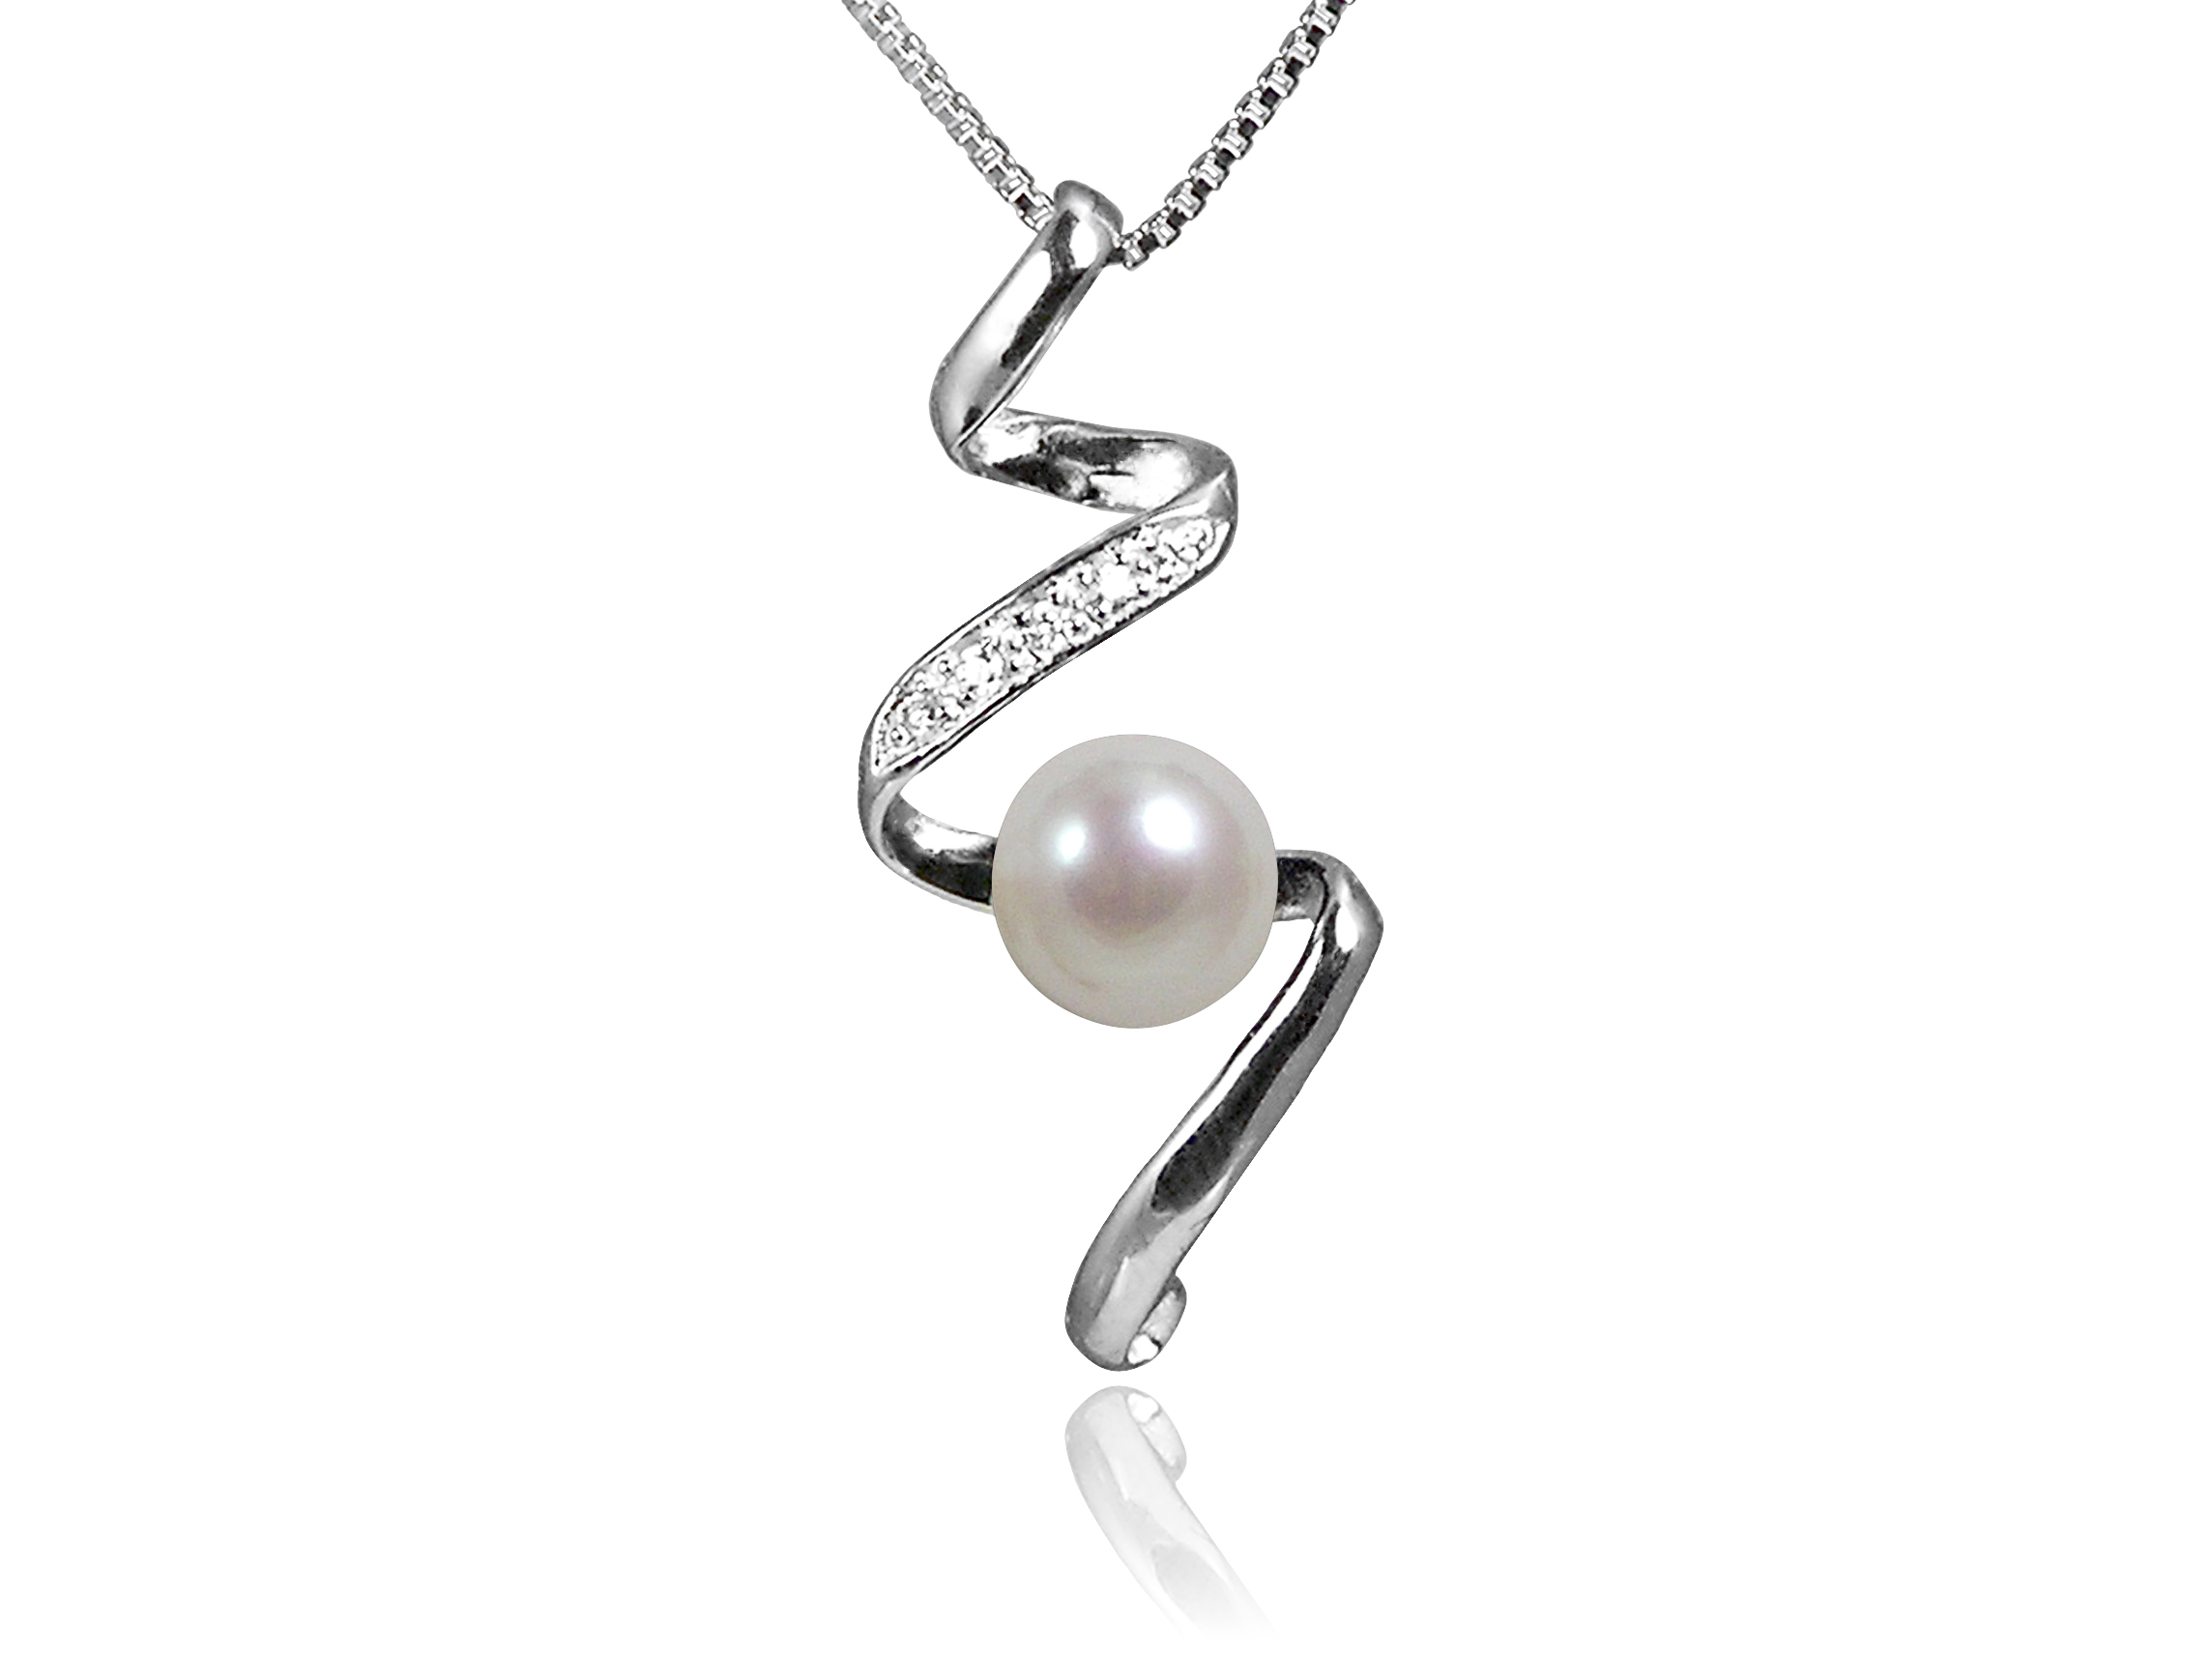 White Freshwater Pearl Pendant with Swarovski Crystal